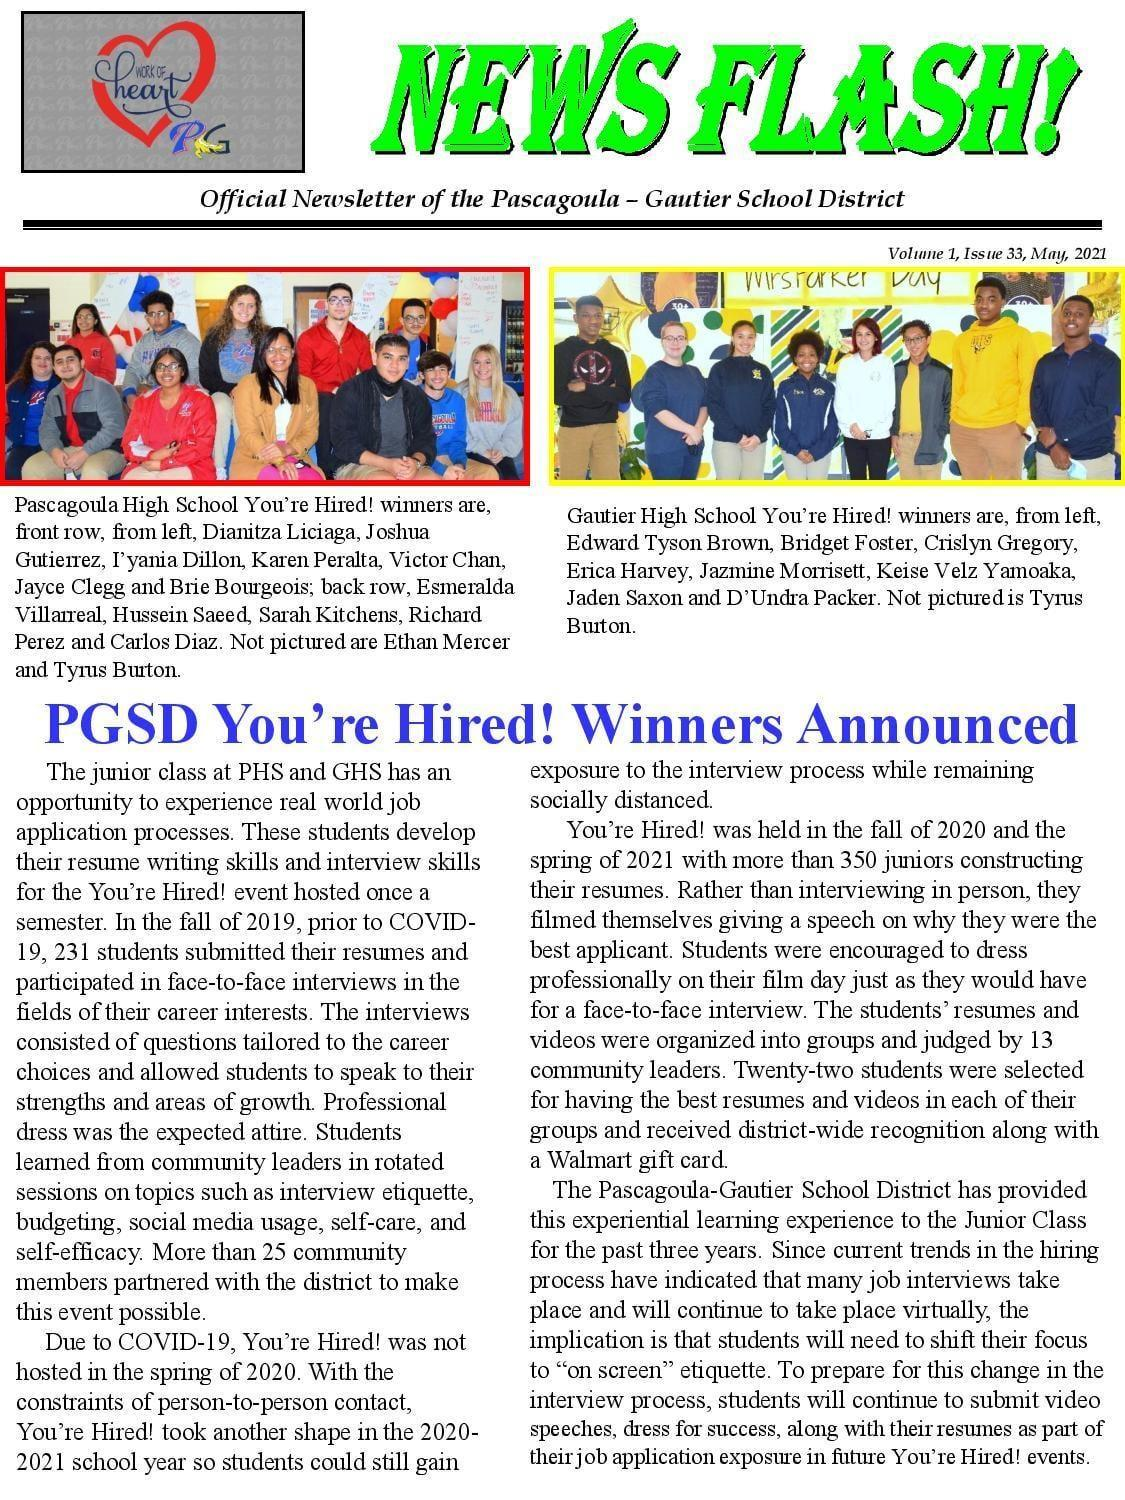 PGSD You're Hired! Winners Announced